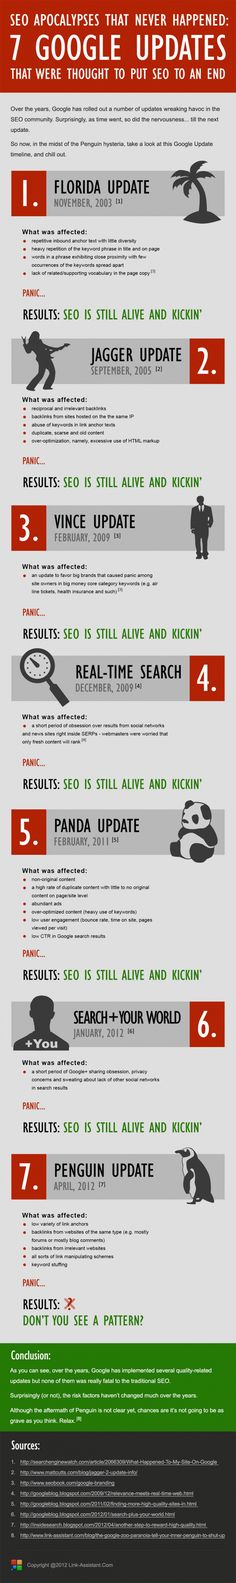 SEO apocalypses that were thought to put SEO to an end #Infographic #SEO @optimanova